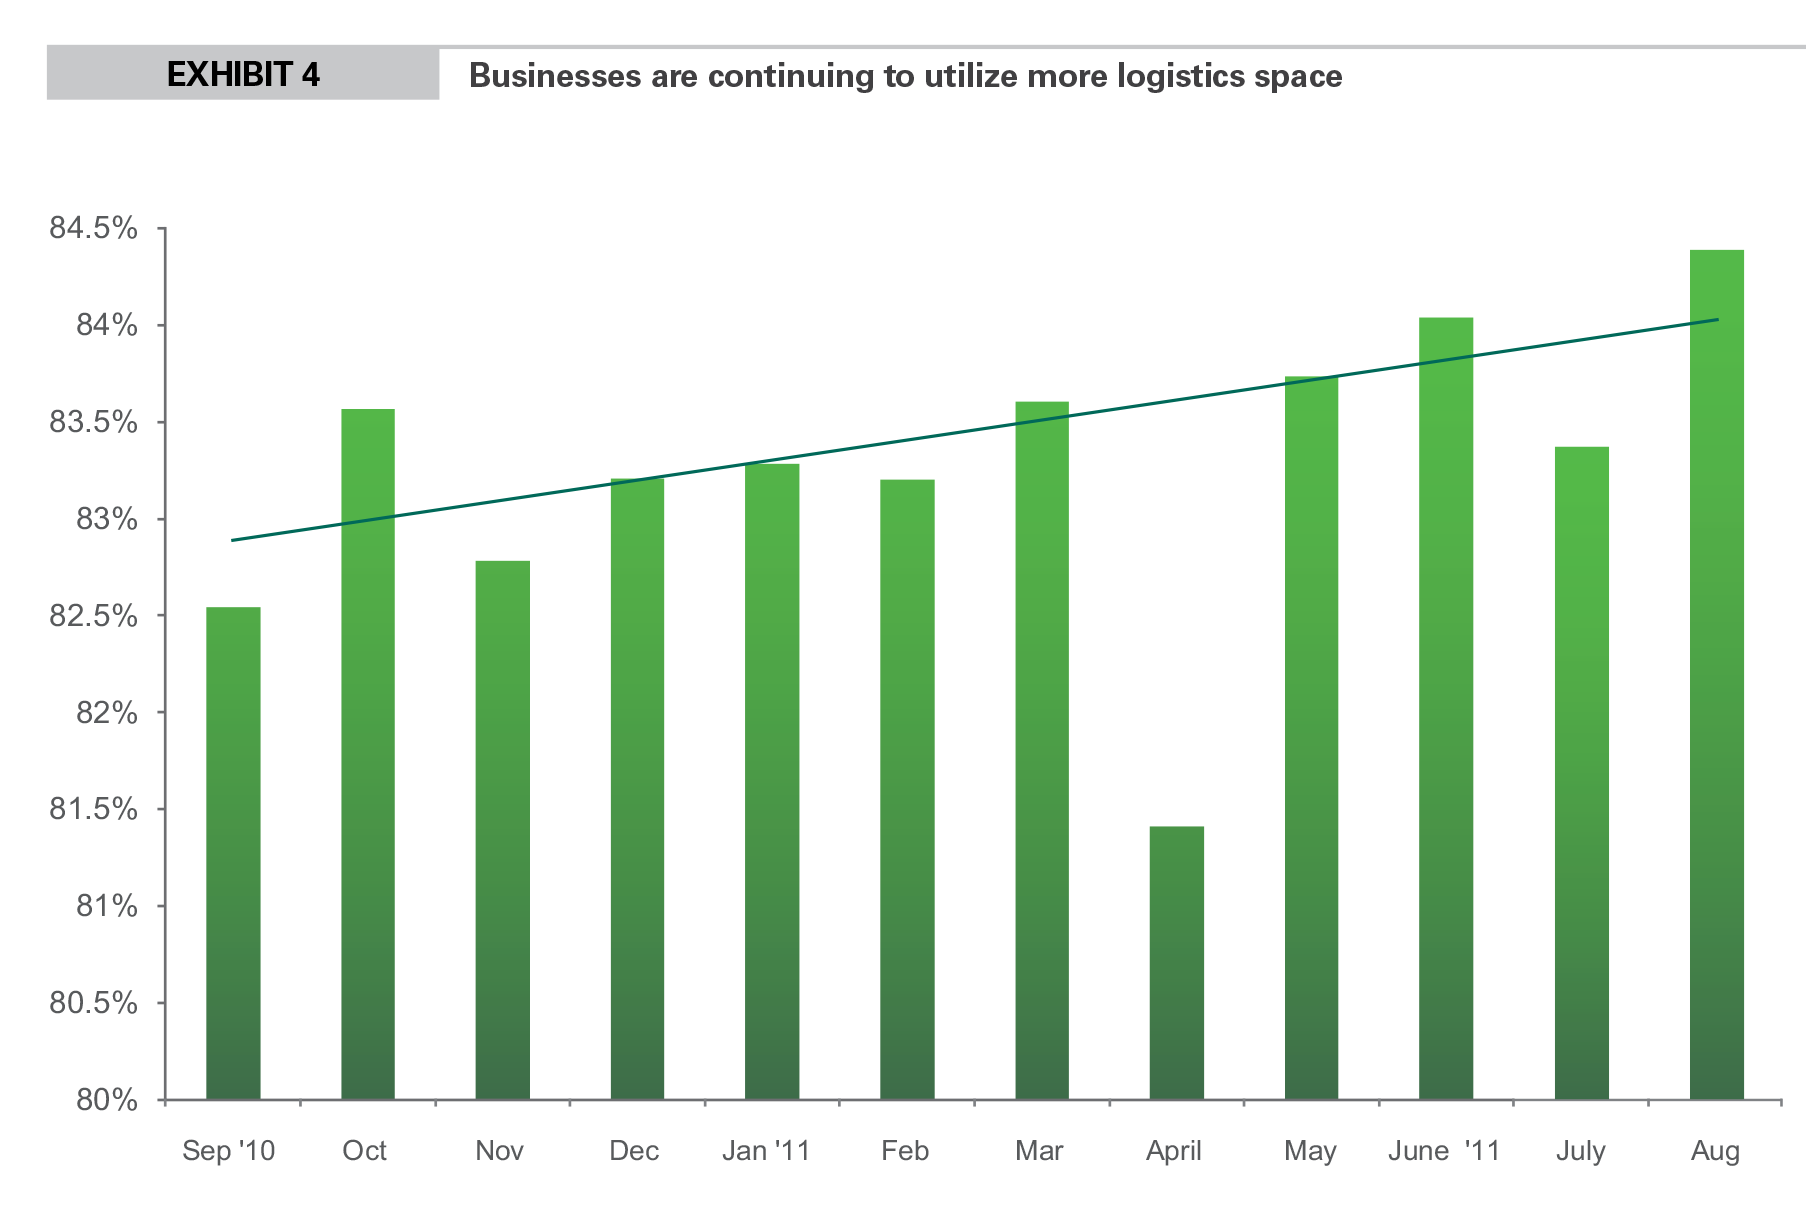 EXHIBIT 4 Businesses are continuing to utilize more logistics space